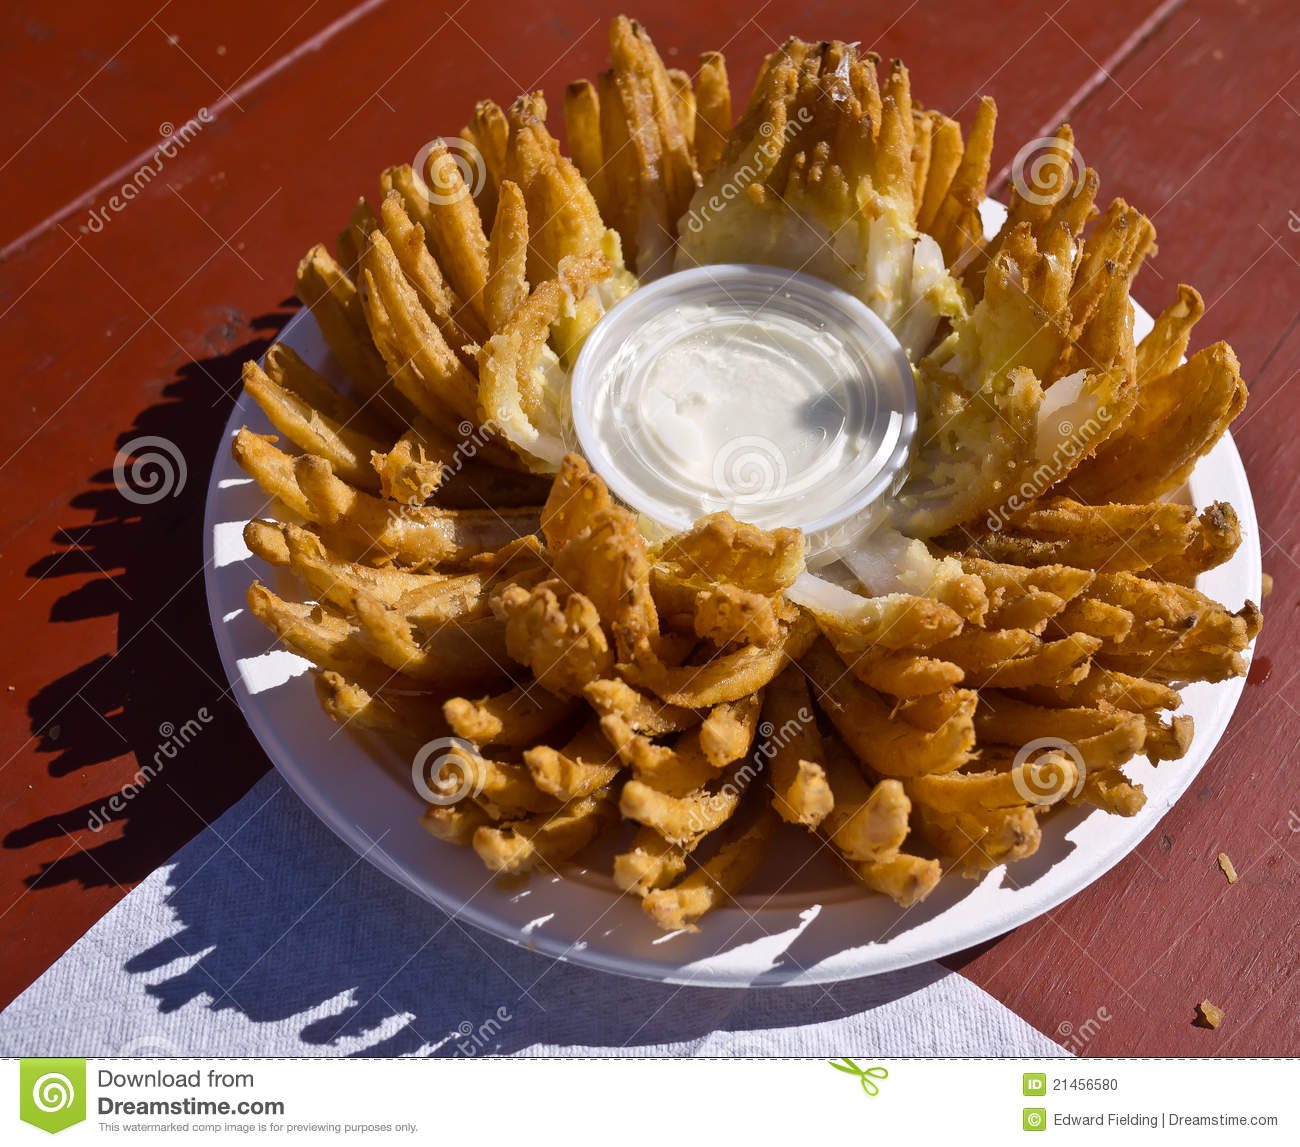 Blooming Onion Plant Agains A Blurred Natural Background Stock.